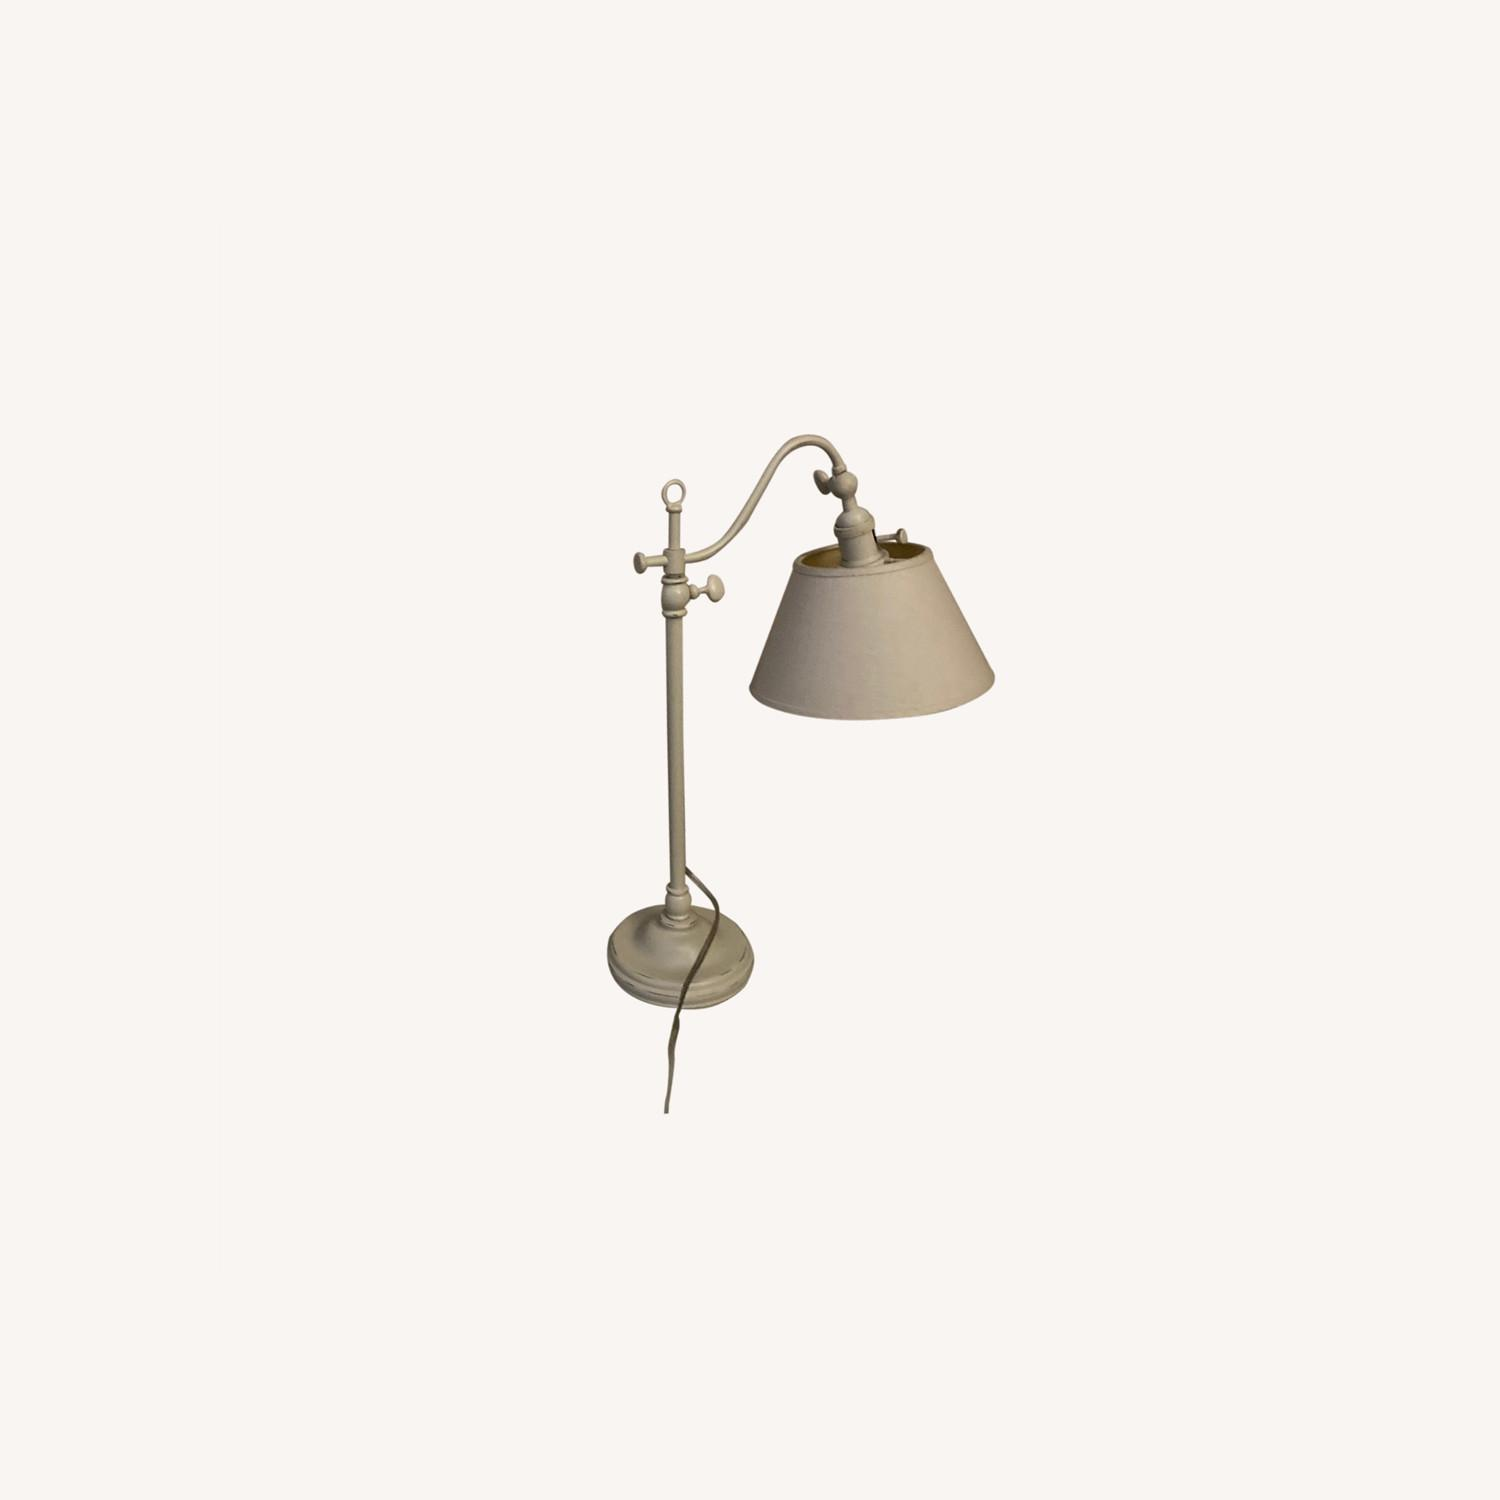 Pottery Barn Side Lamps - image-0